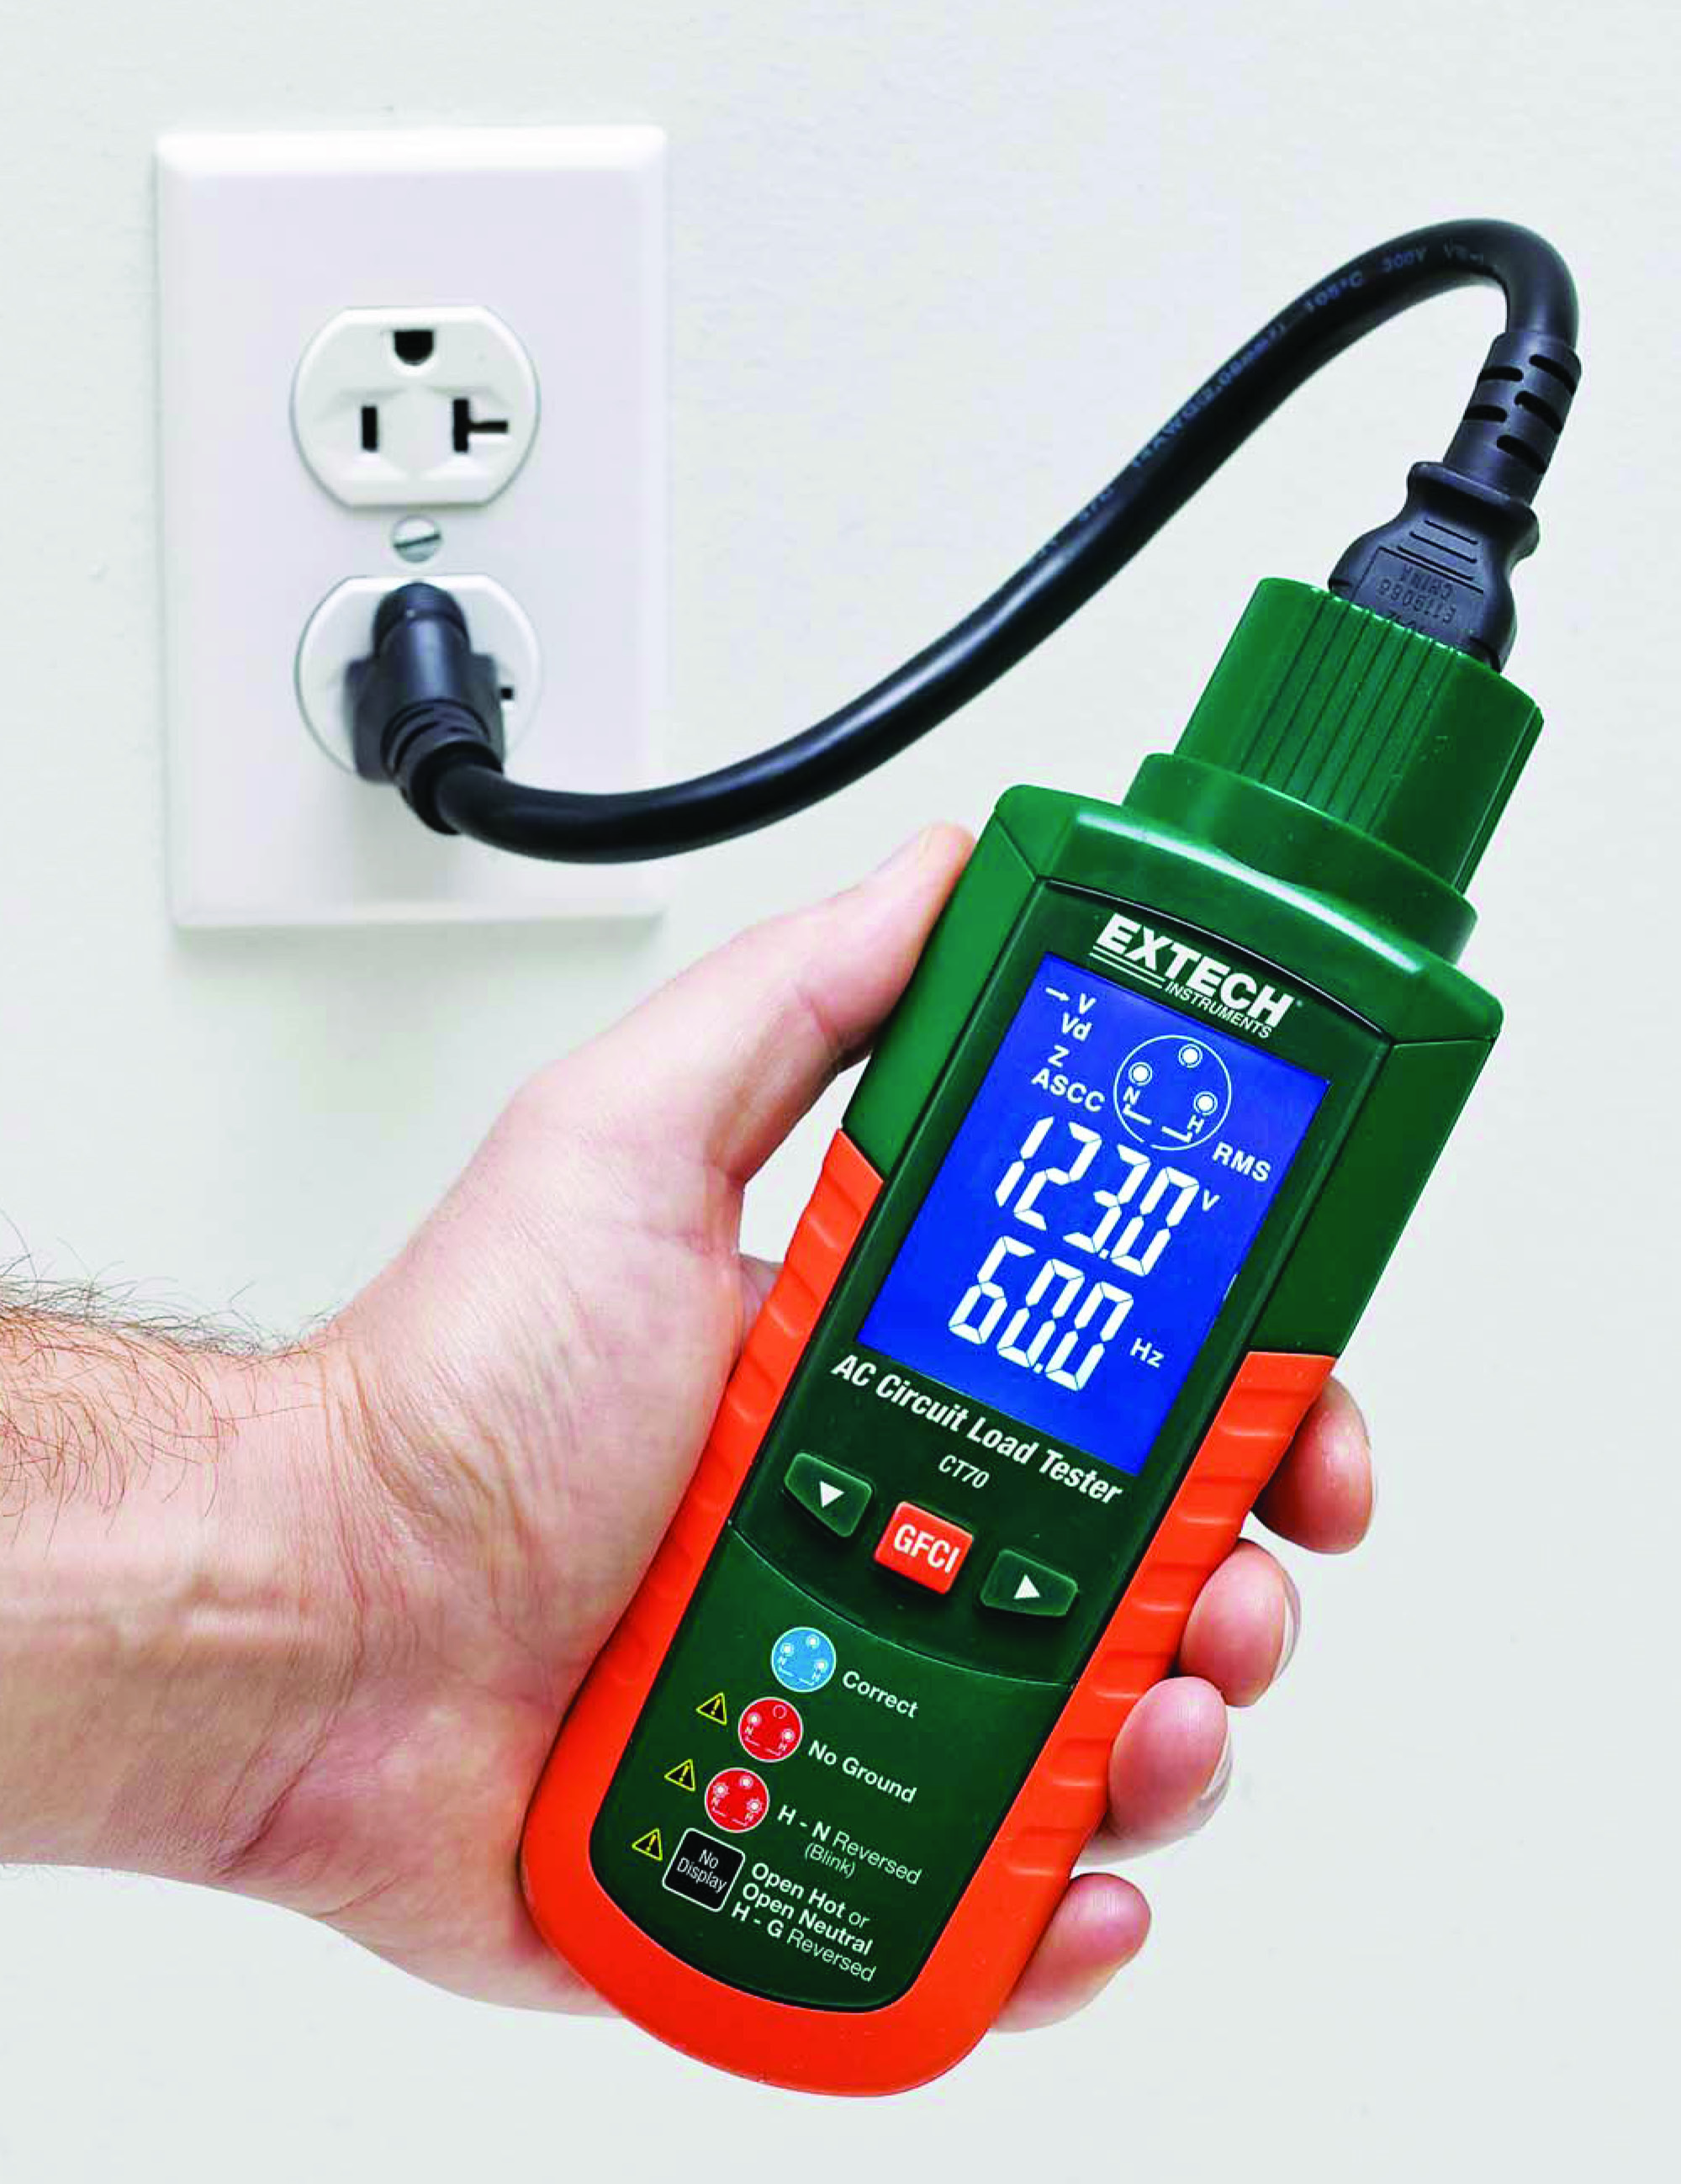 New Extech Ct70 Delivers Rapid Analysis Of Outlet Circuit Wiring A Ac Load Testerideal For Up Selling Gfci And Epd Repairs